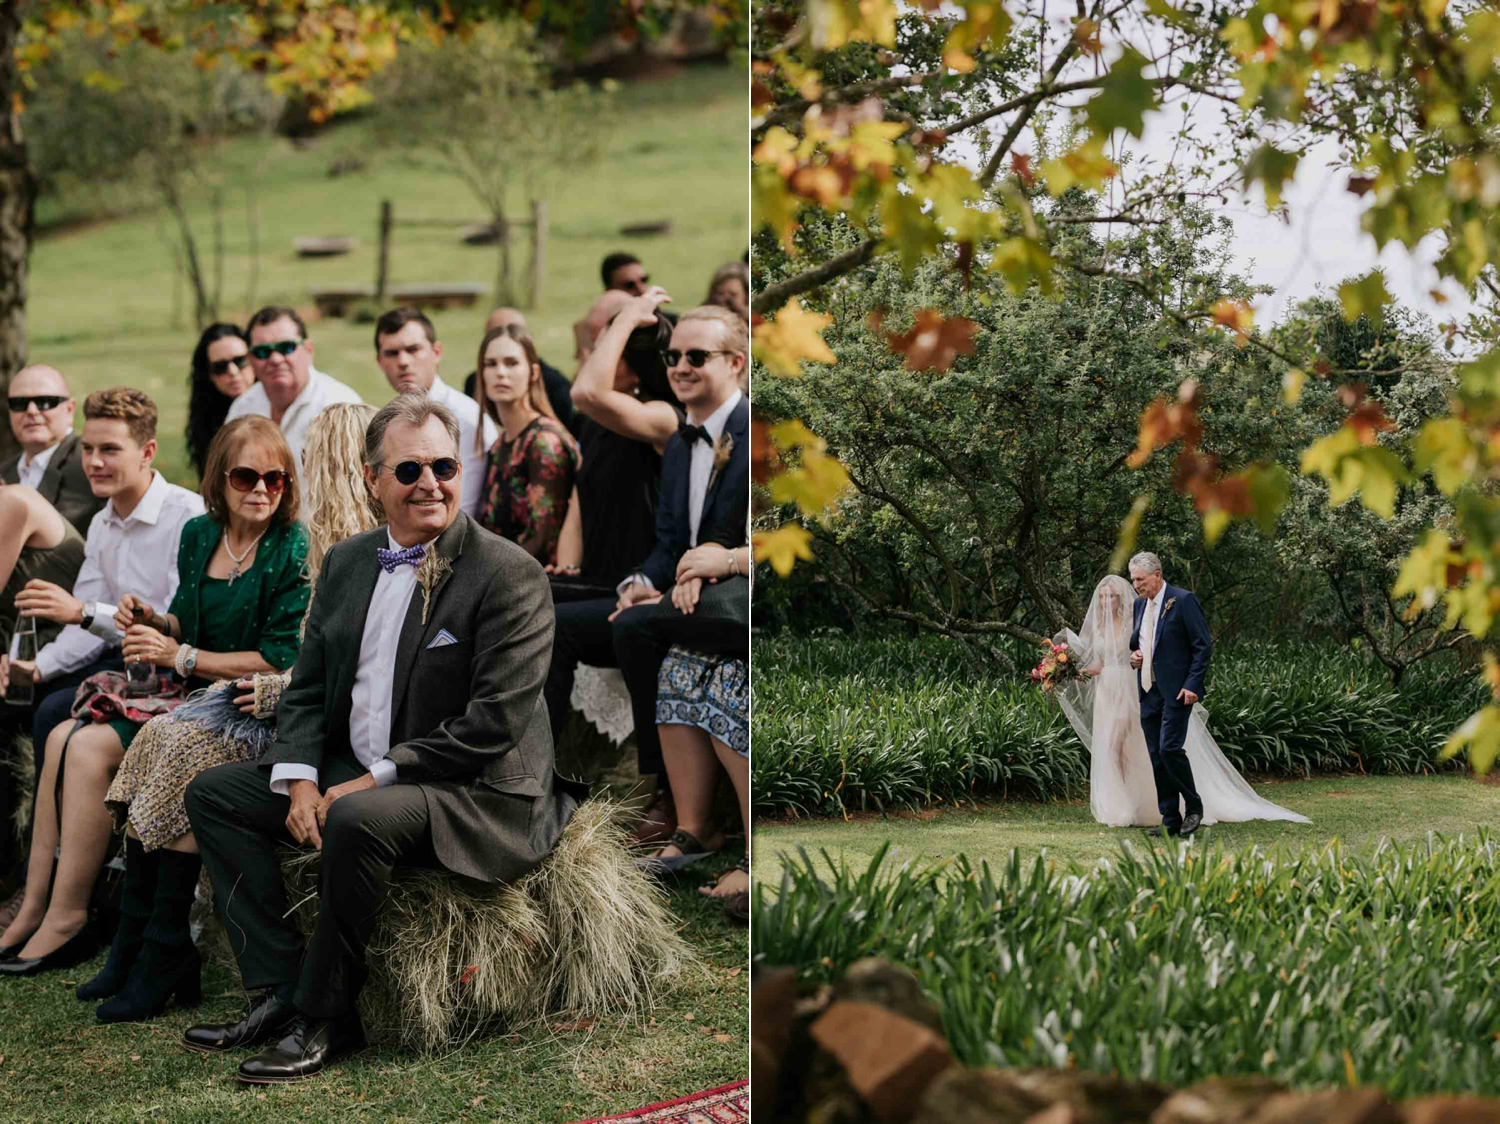 Father of the bride walking daughter down the aisle under the Autumn tress on a farm. Guests watching bride walk down the aisle.